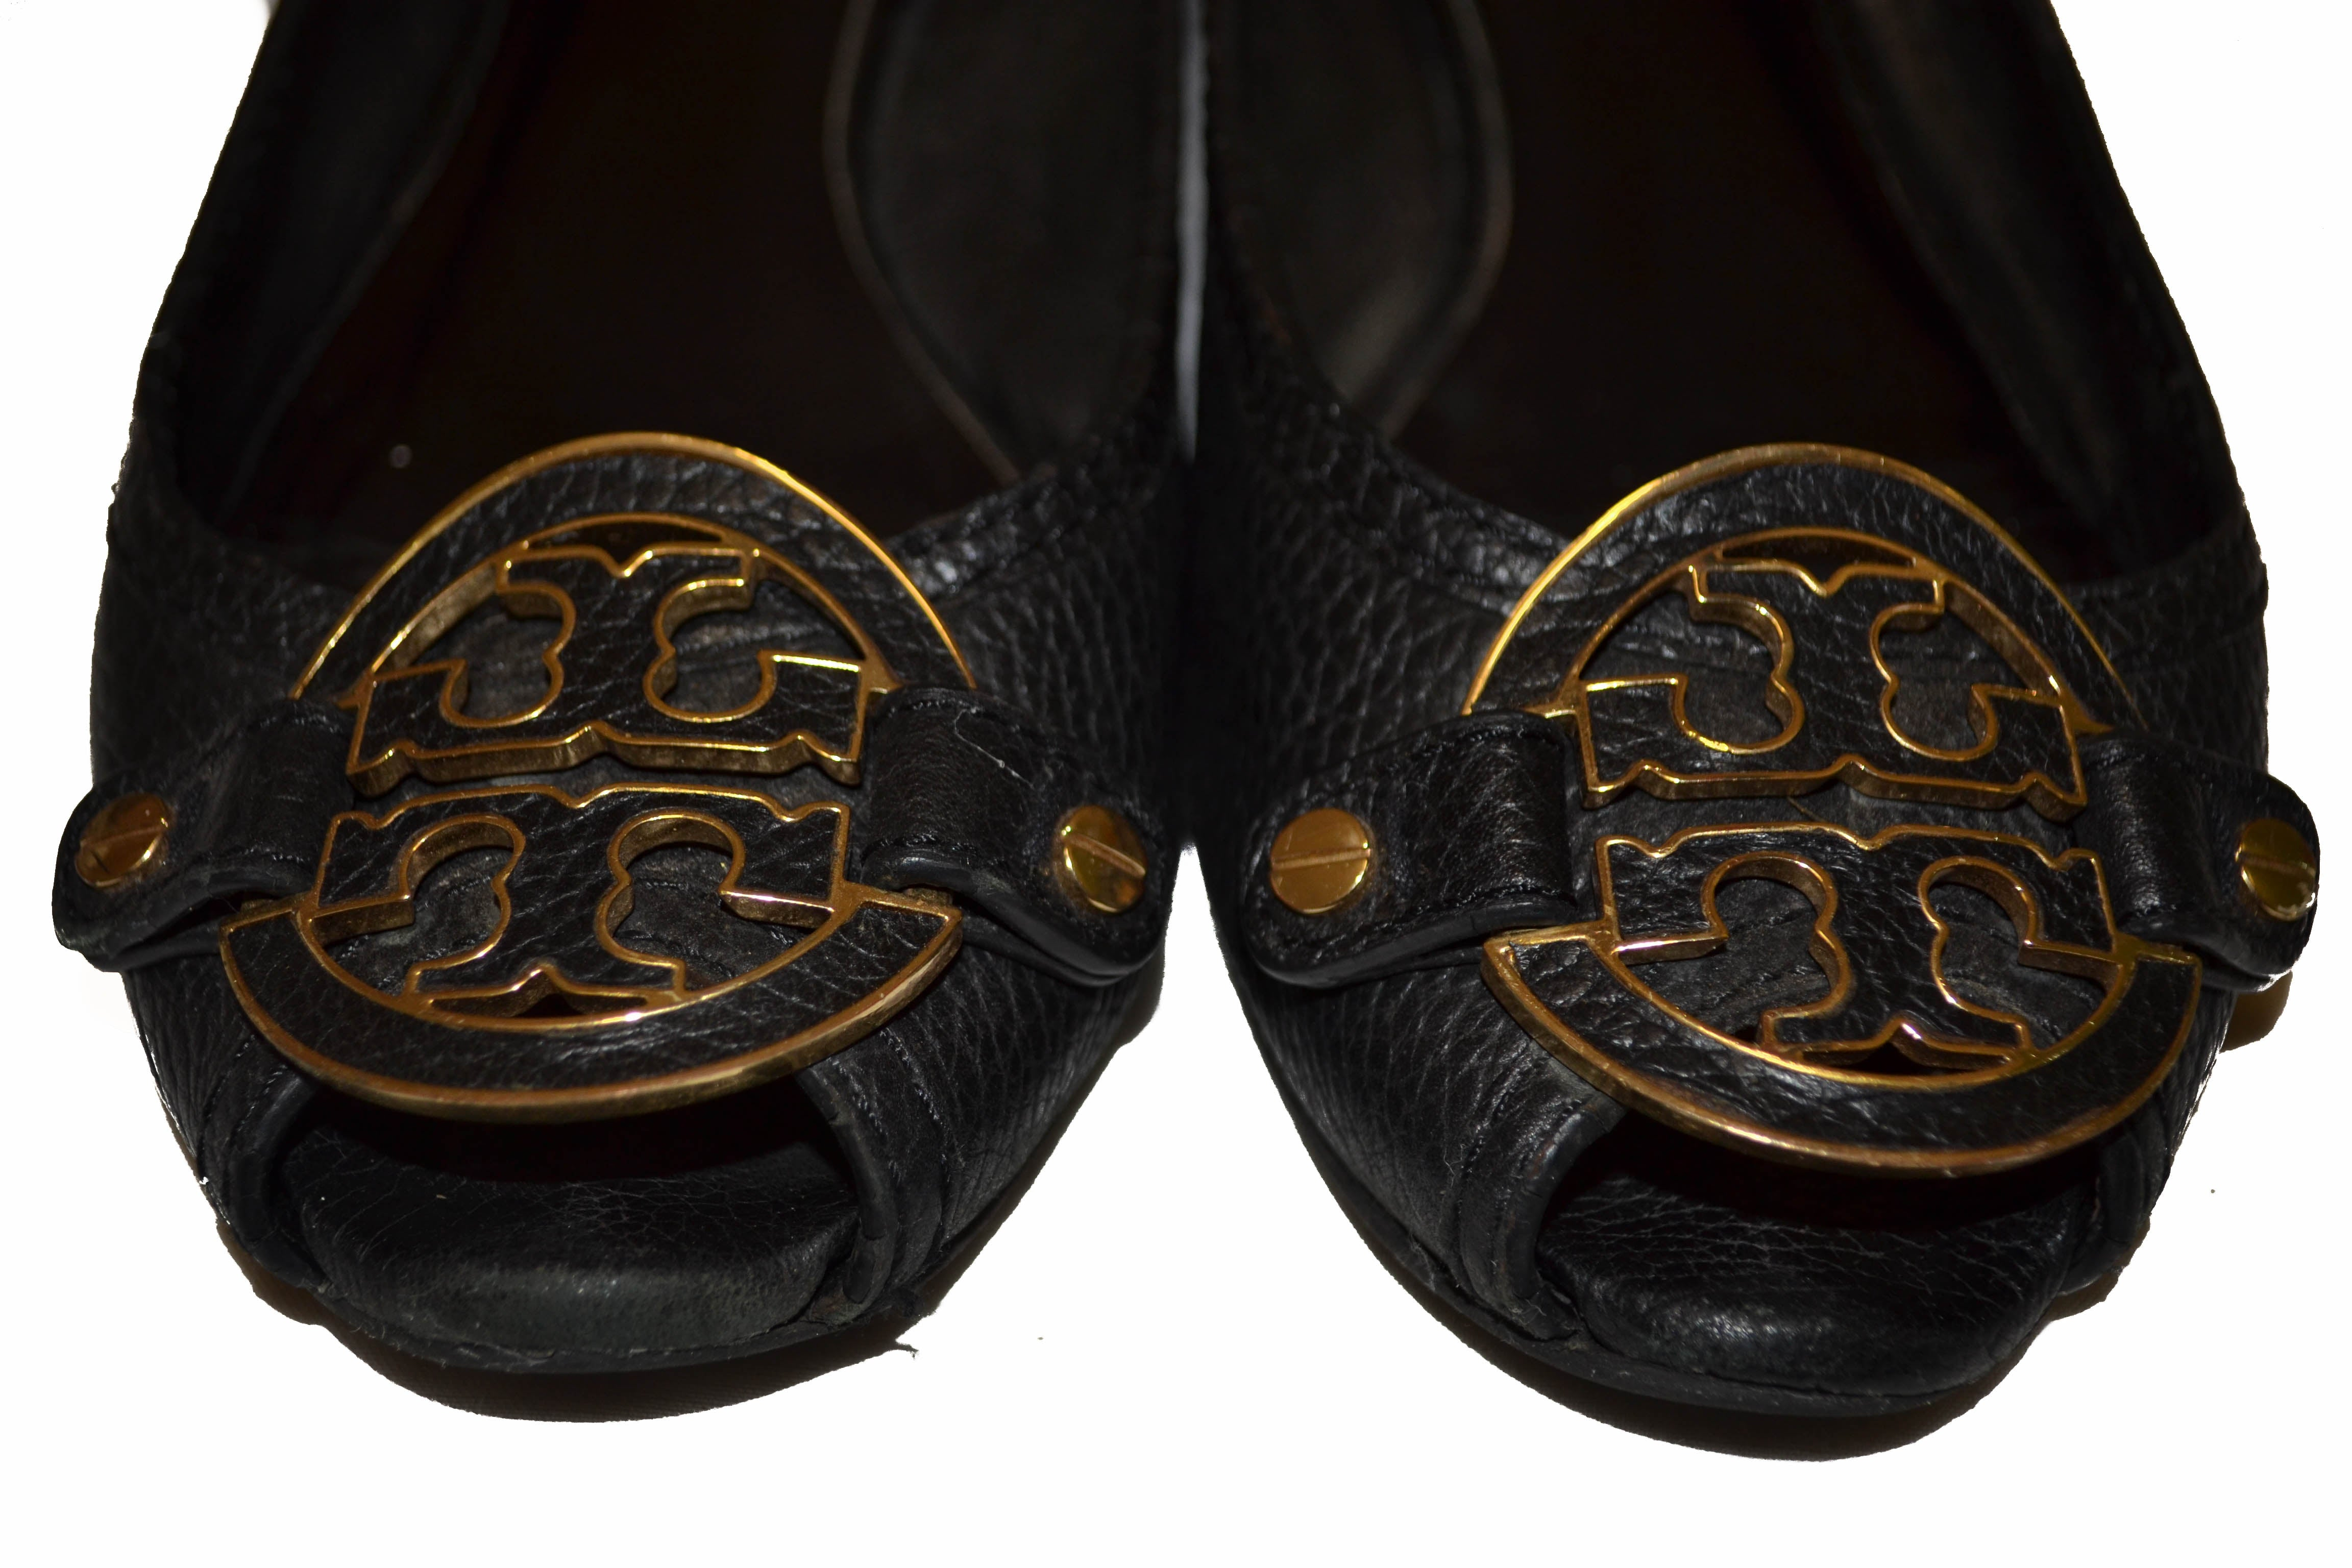 Authentic Tory Burch Black Leather Flats Size 8.5M